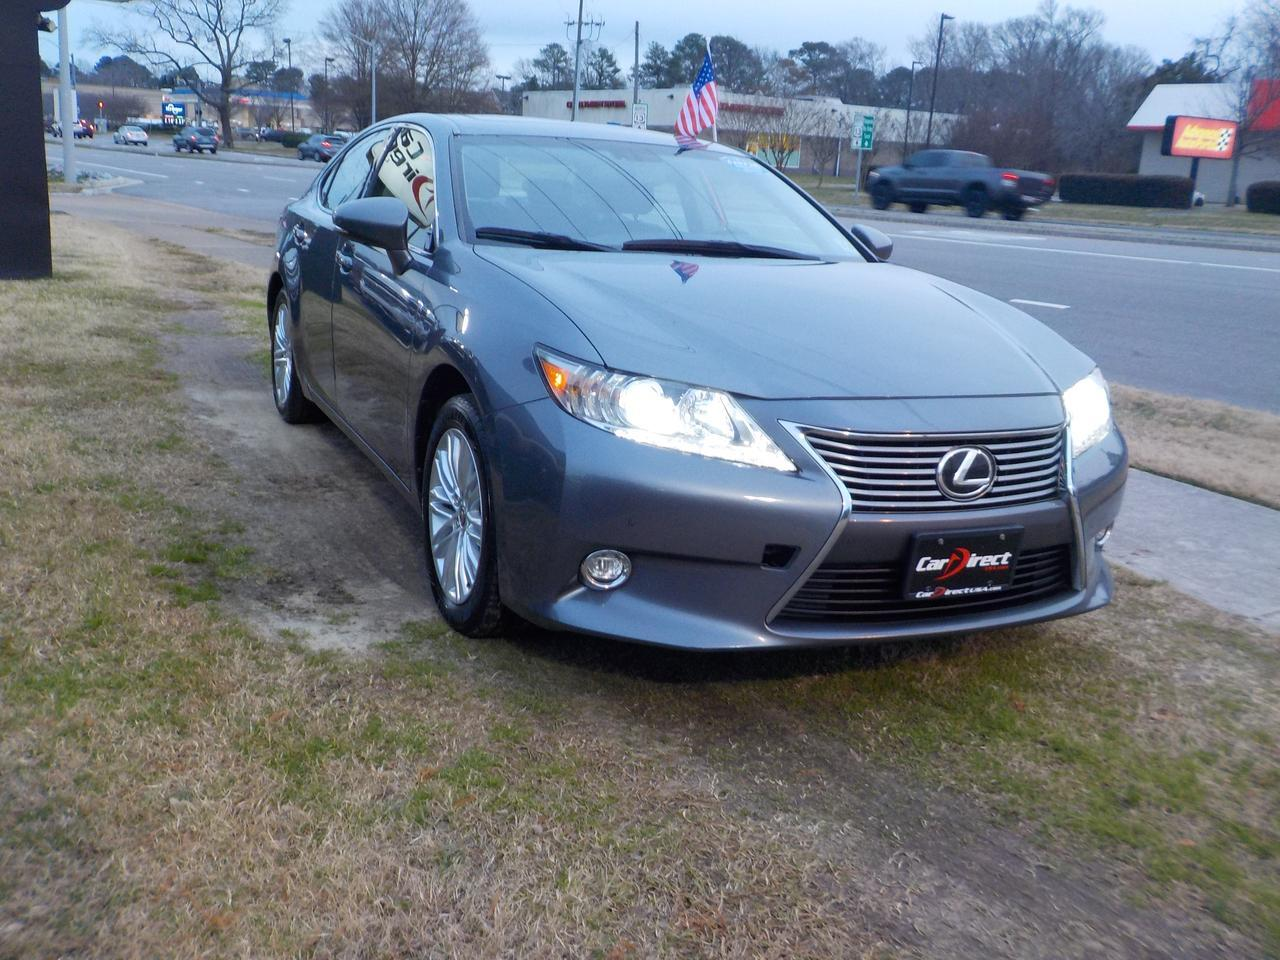 2014 LEXUS ES 350 ONE OWNER, LEATHER HEATED & COOLED SEATS, NAVIGATION, SUNROOF, BACKUP CAMERA, ONLY 87K MILES! Virginia Beach VA